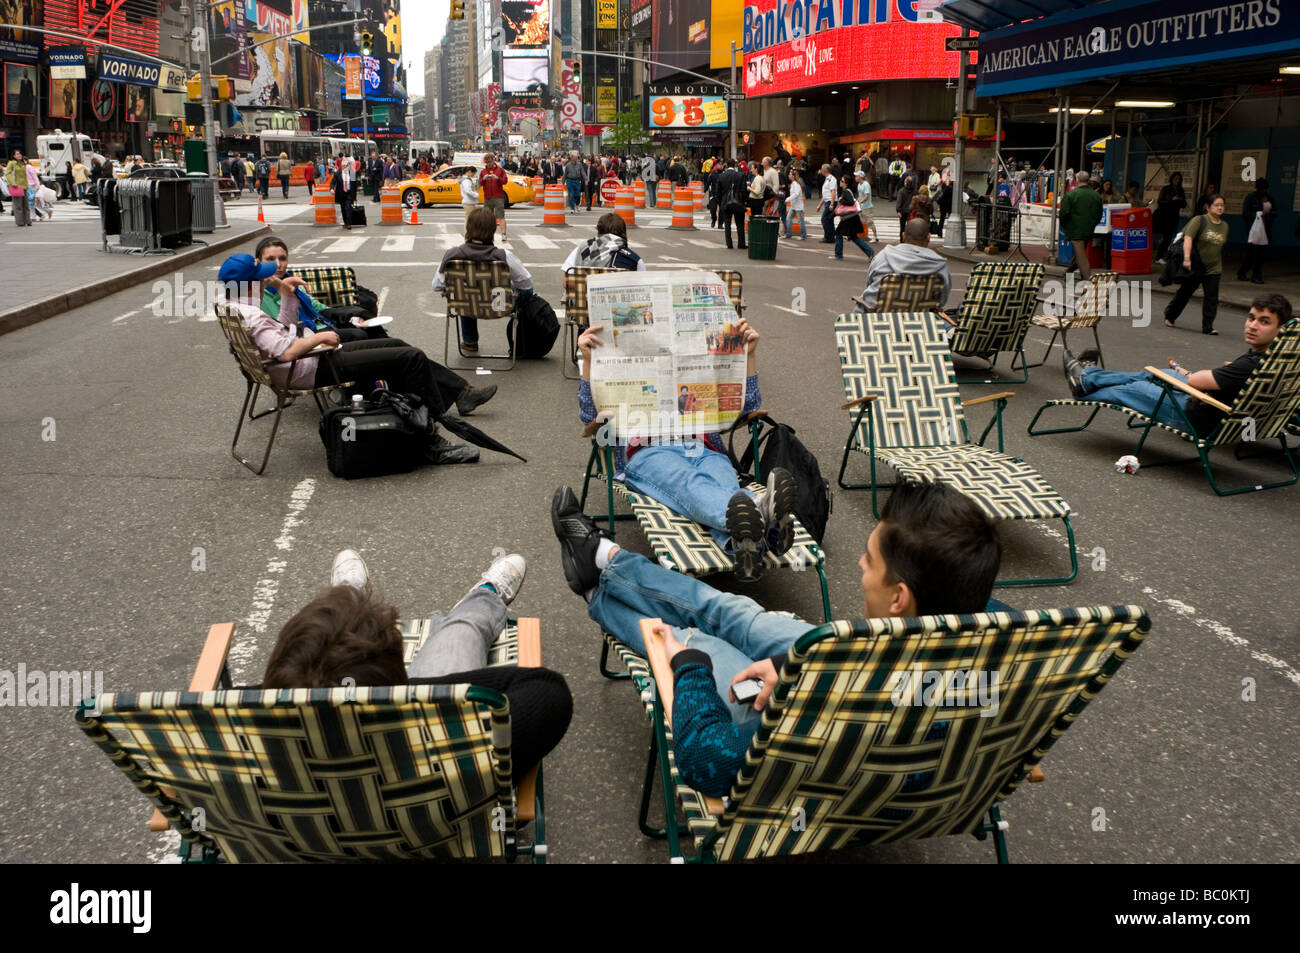 Tourists relax in lawn chairs in the new car-free Broadway Plaza in Times Square - Stock Image